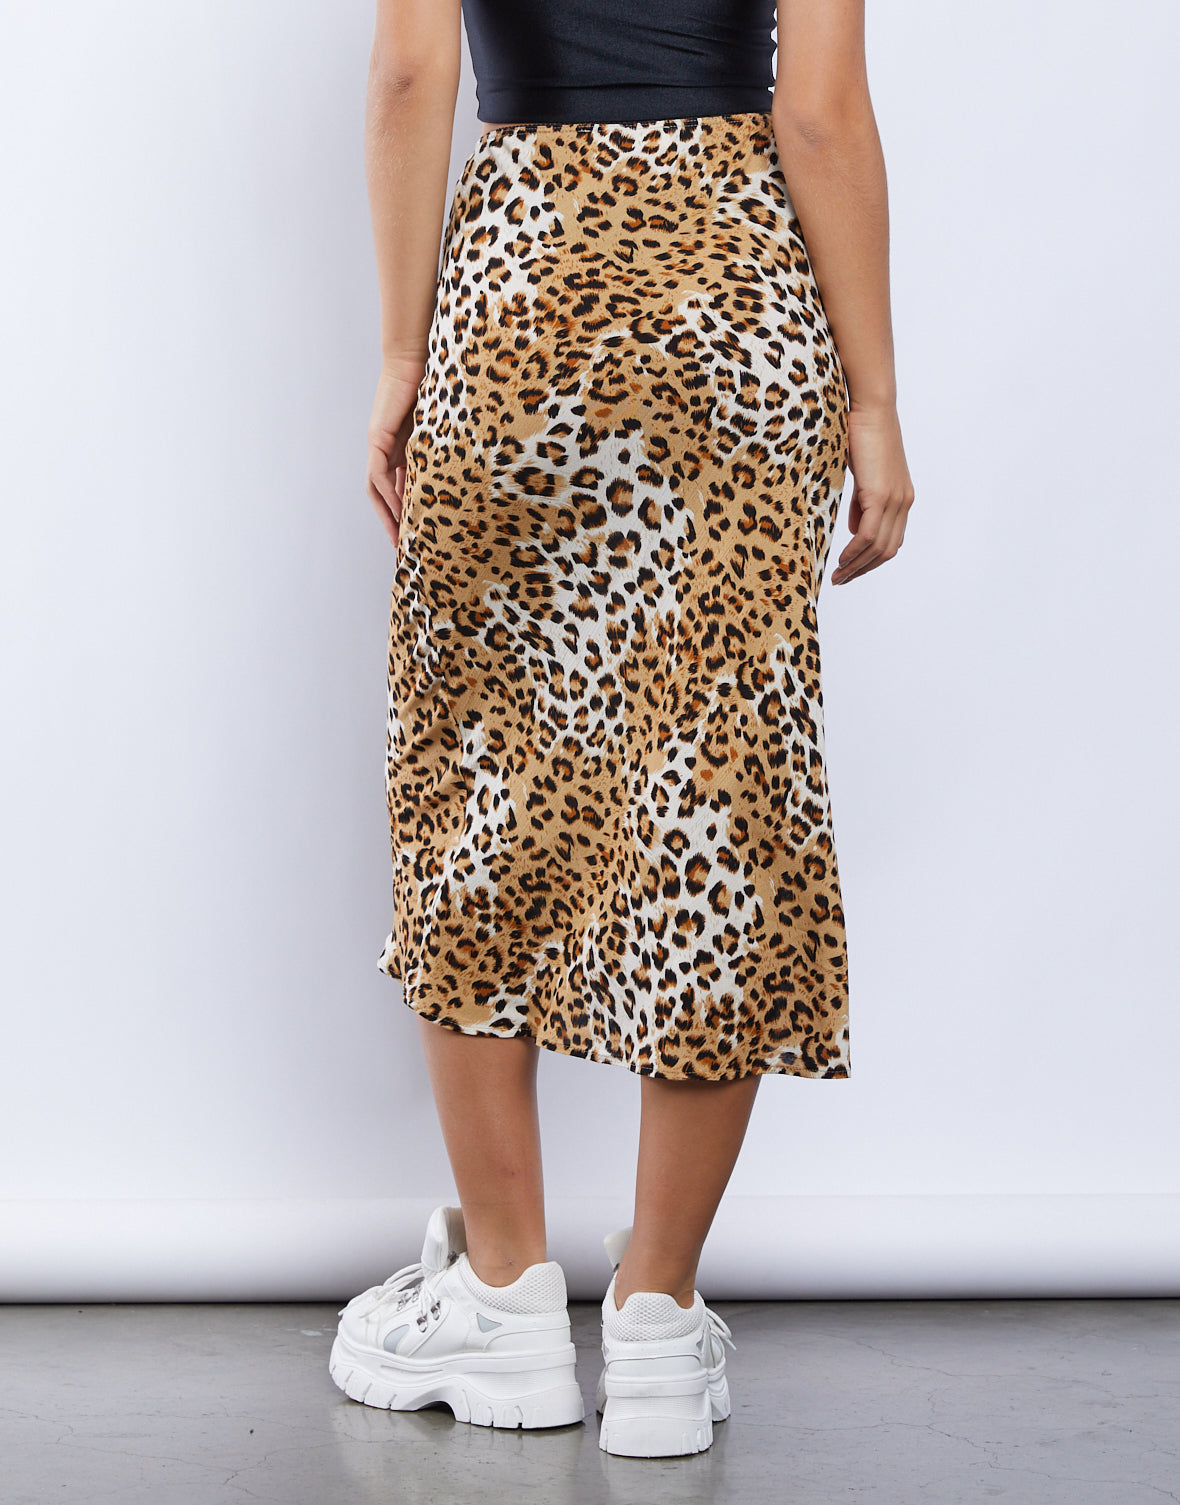 Alley Cat Spotted Midi Skirt